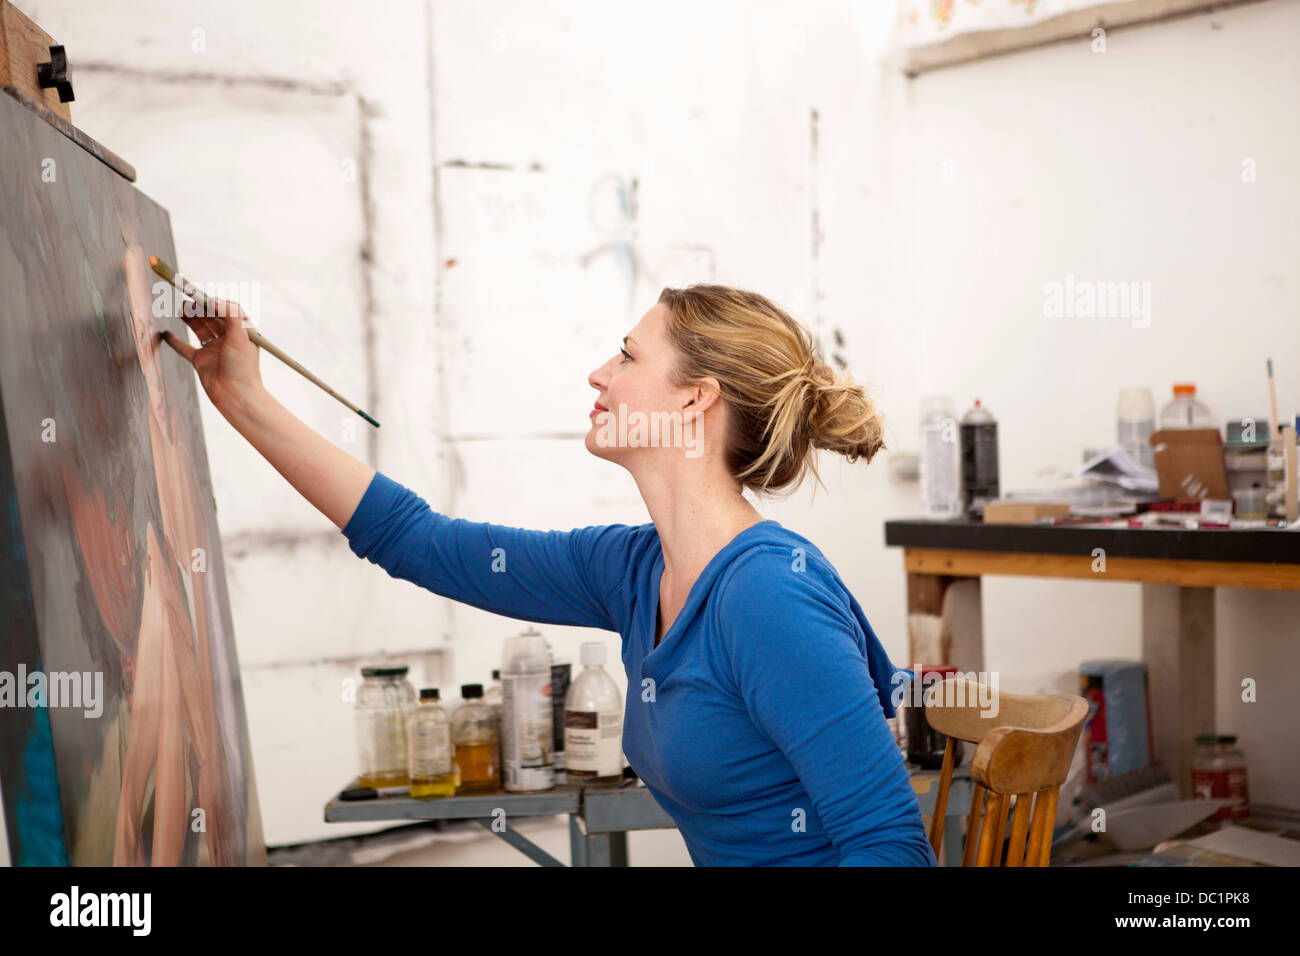 Mid adult woman painting on canvas dans un studio d'artiste Photo Stock